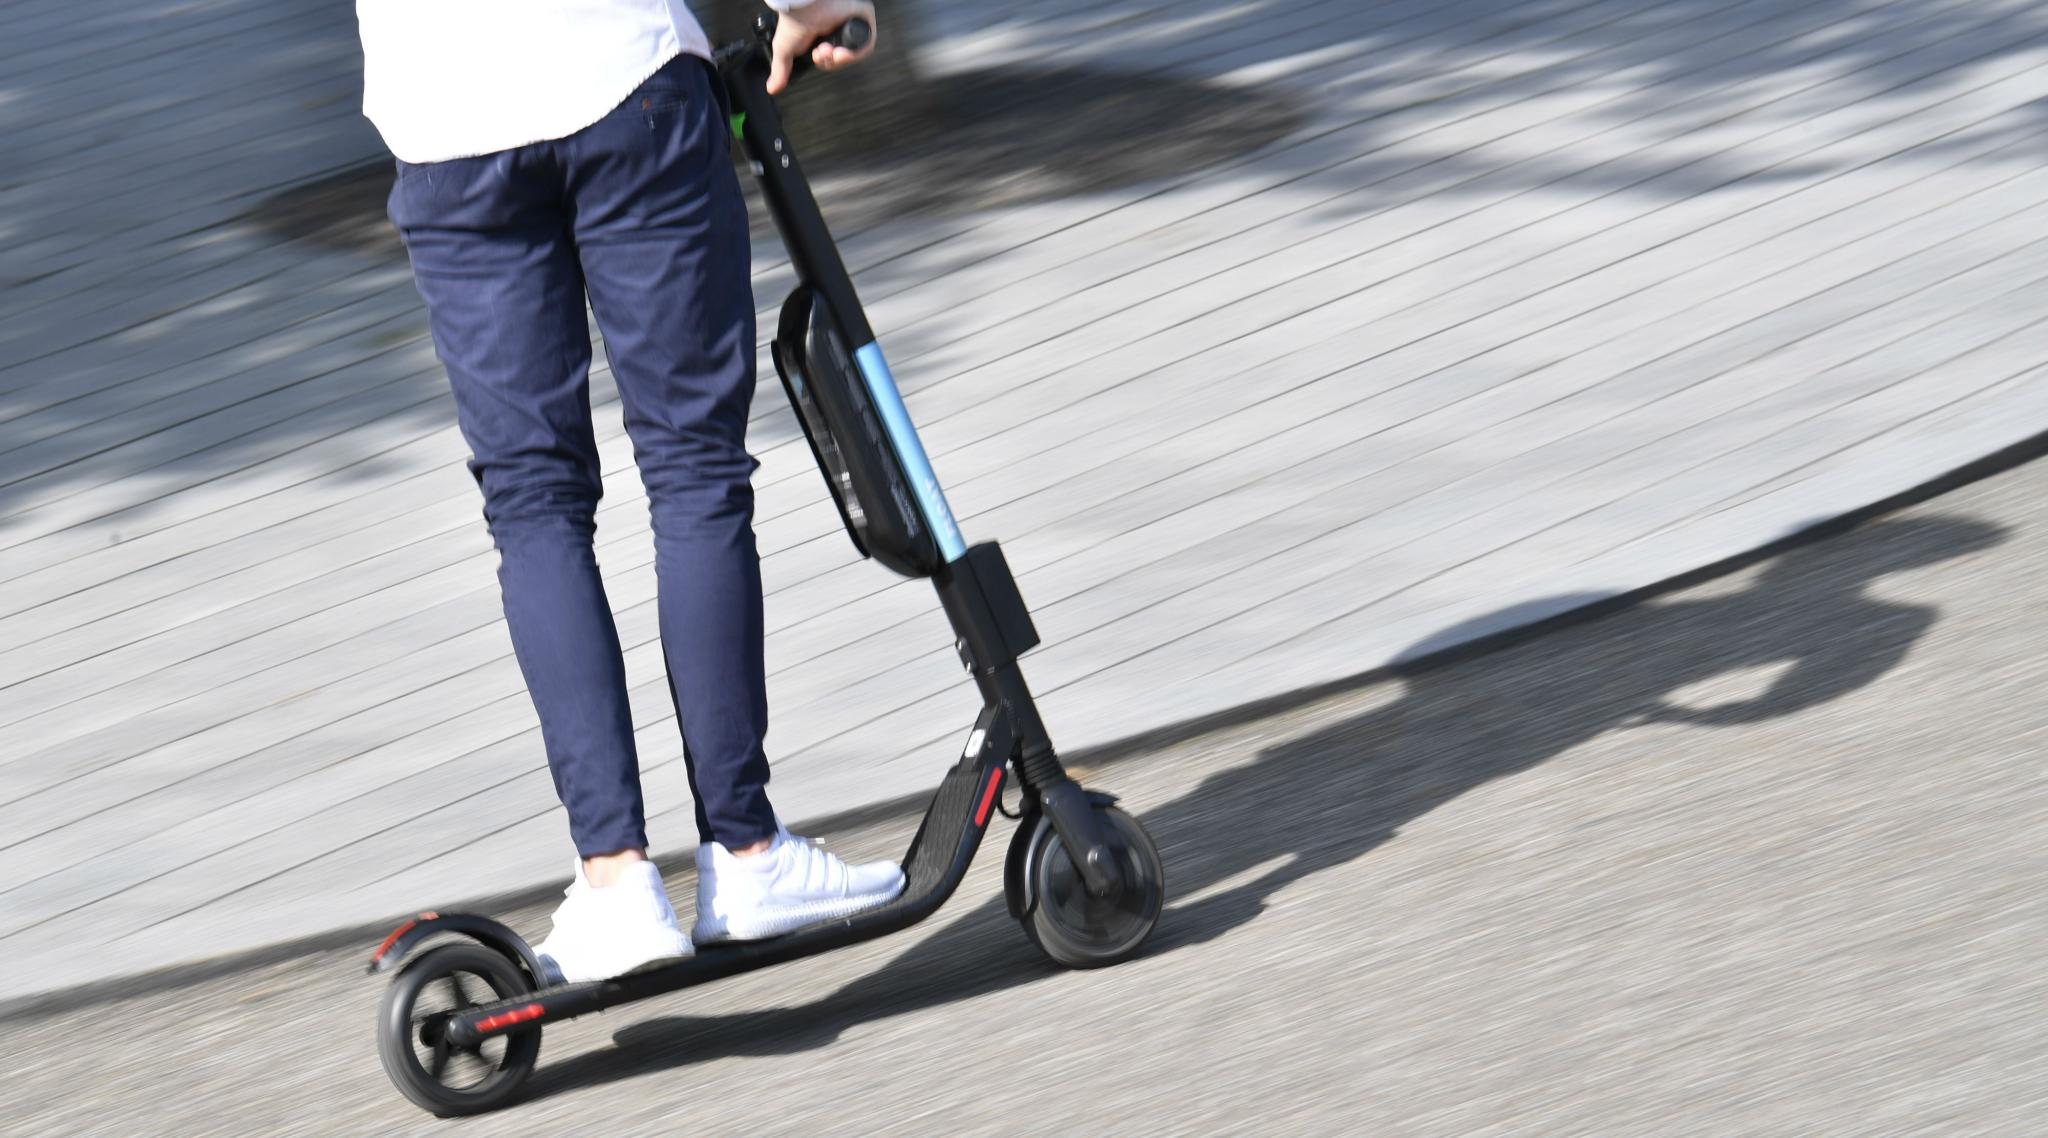 E-Scooters Banned on Footpath in Singapore, Violators to be Jailed as Per New Regulations